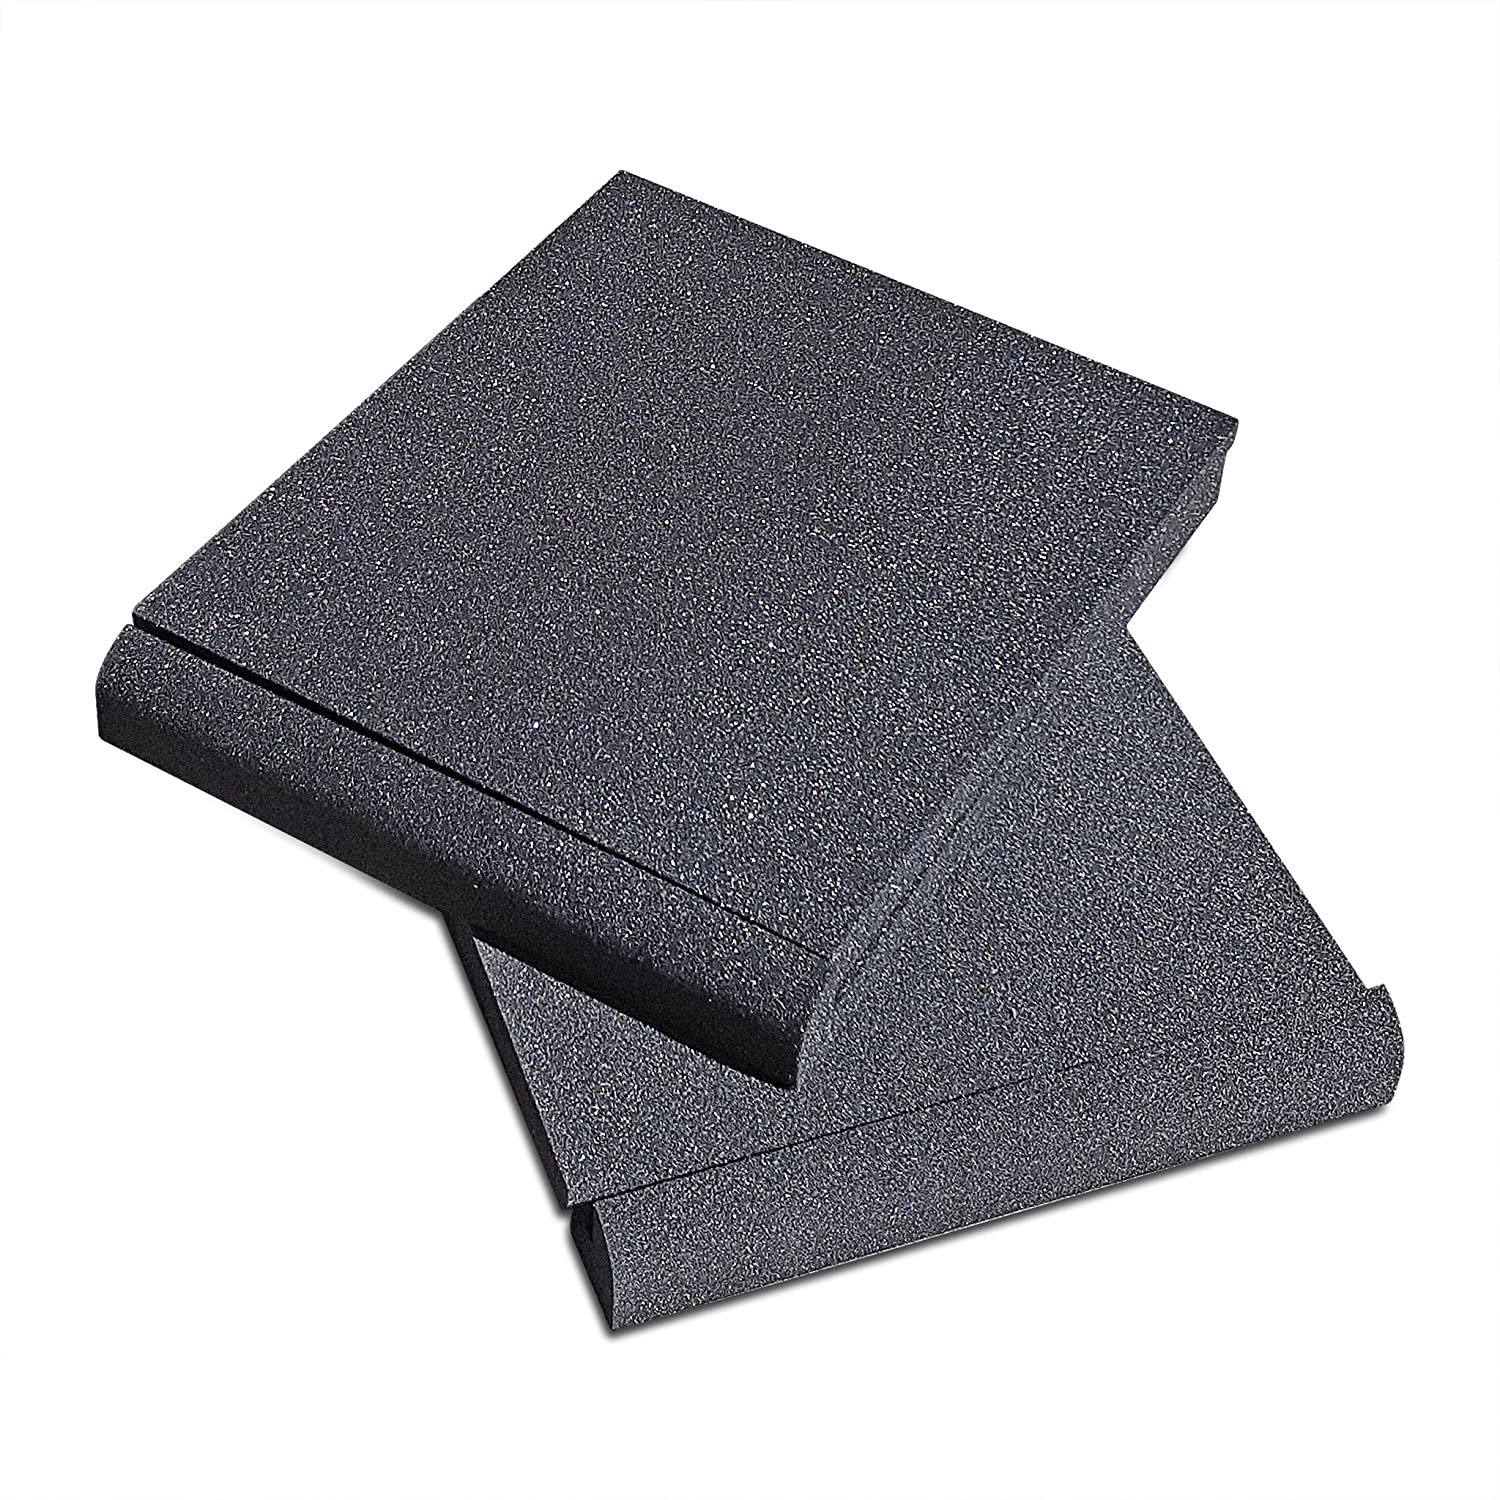 Studio Solutions High Density Studio Monitor Isolation Pads Pair For 5 Inch Monitors 4336353367